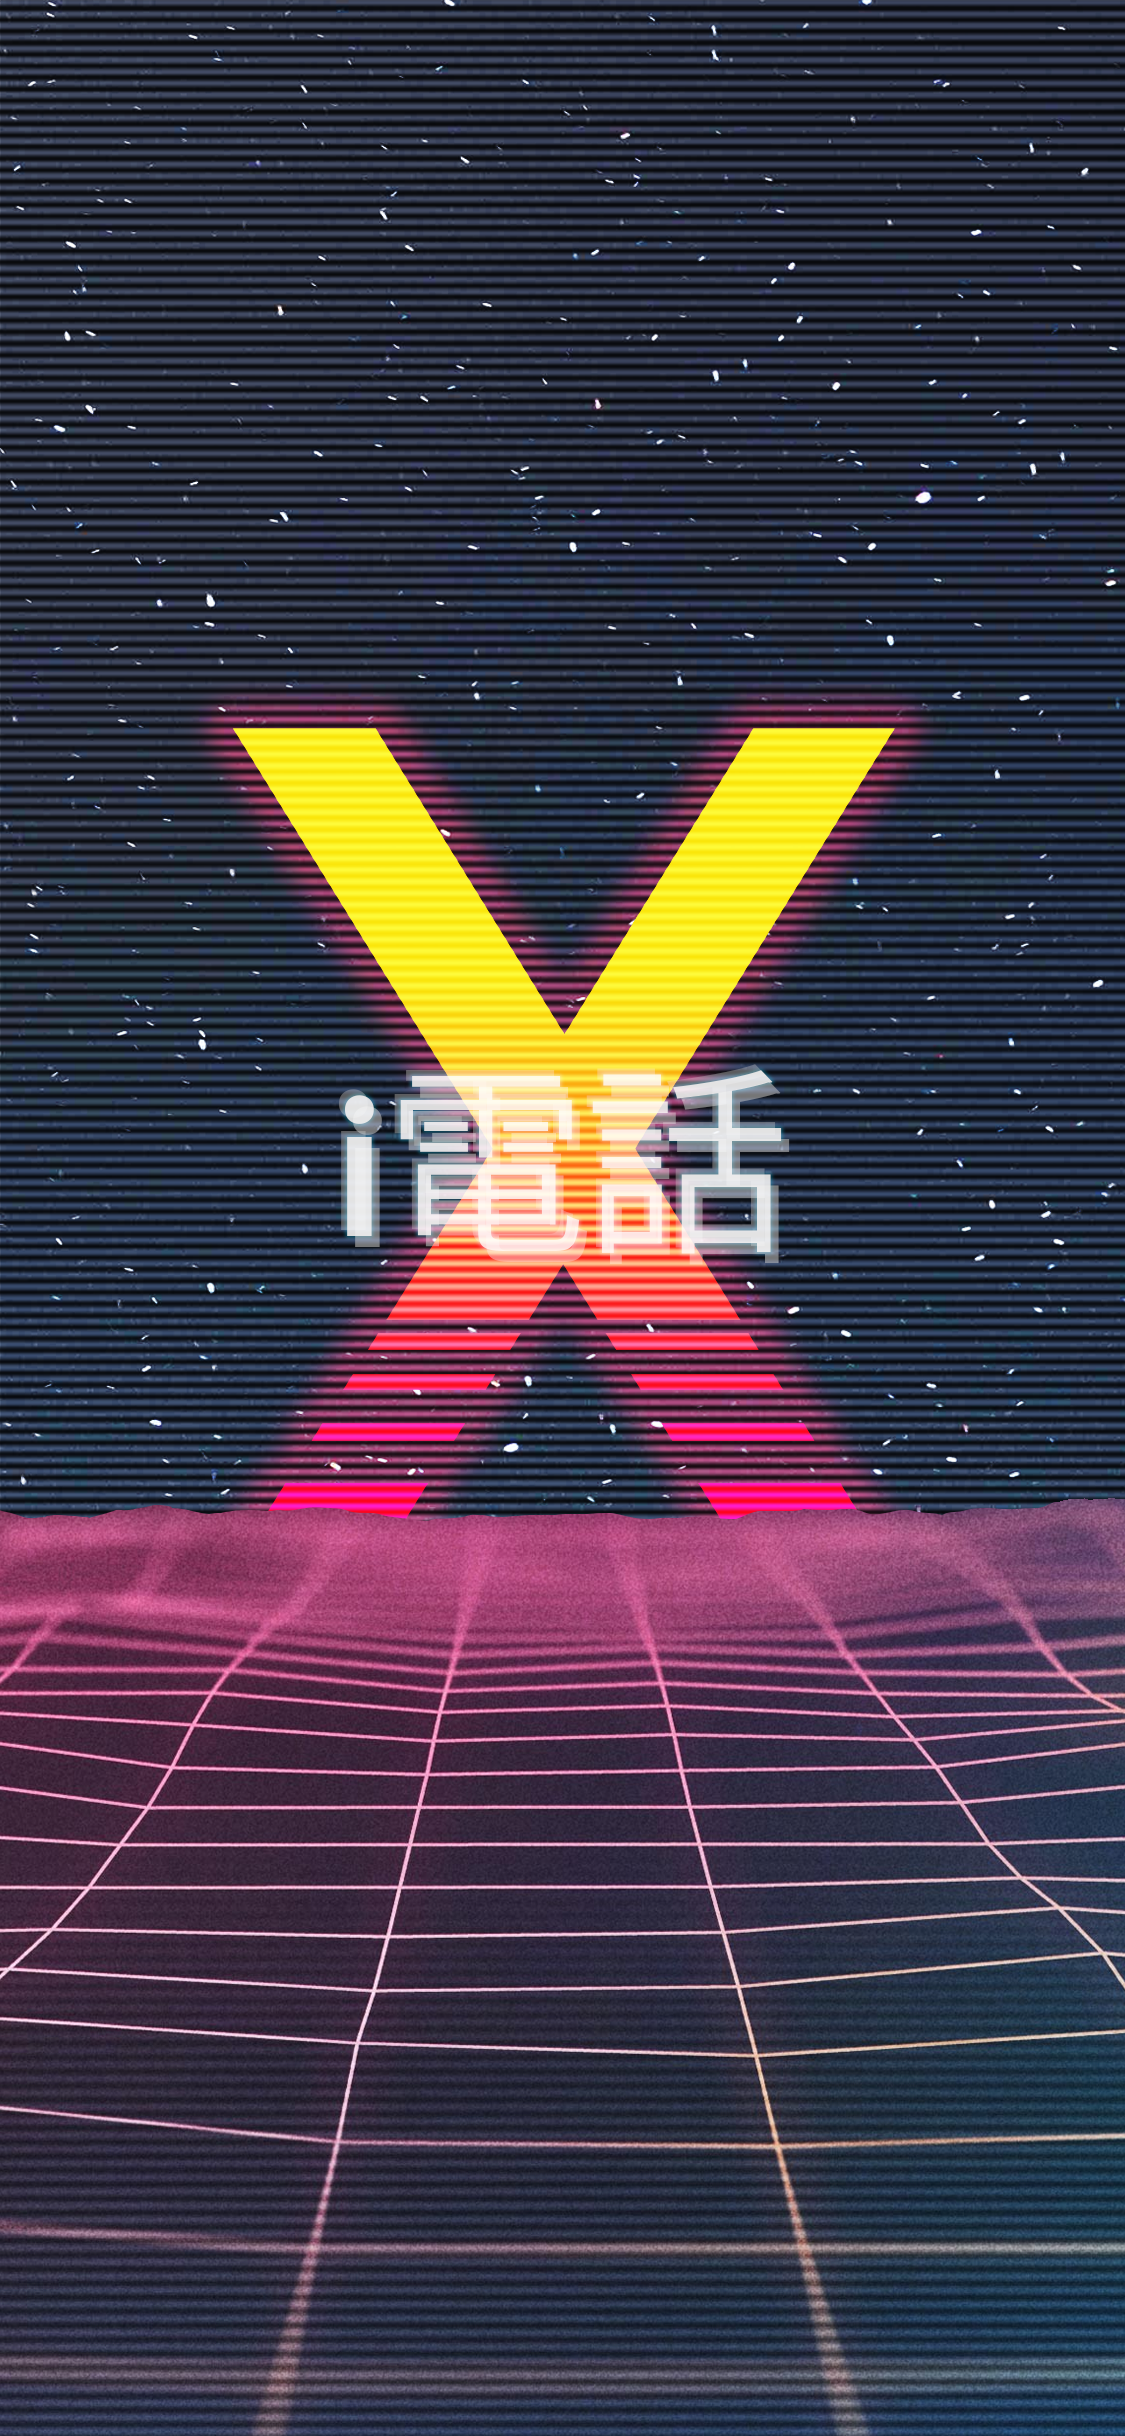 Iphone X Vaporwave 2436 X 1125 Vaporwave Wallpaper Retro Wallpaper Iphone Iphone Wallpaper Vaporwave